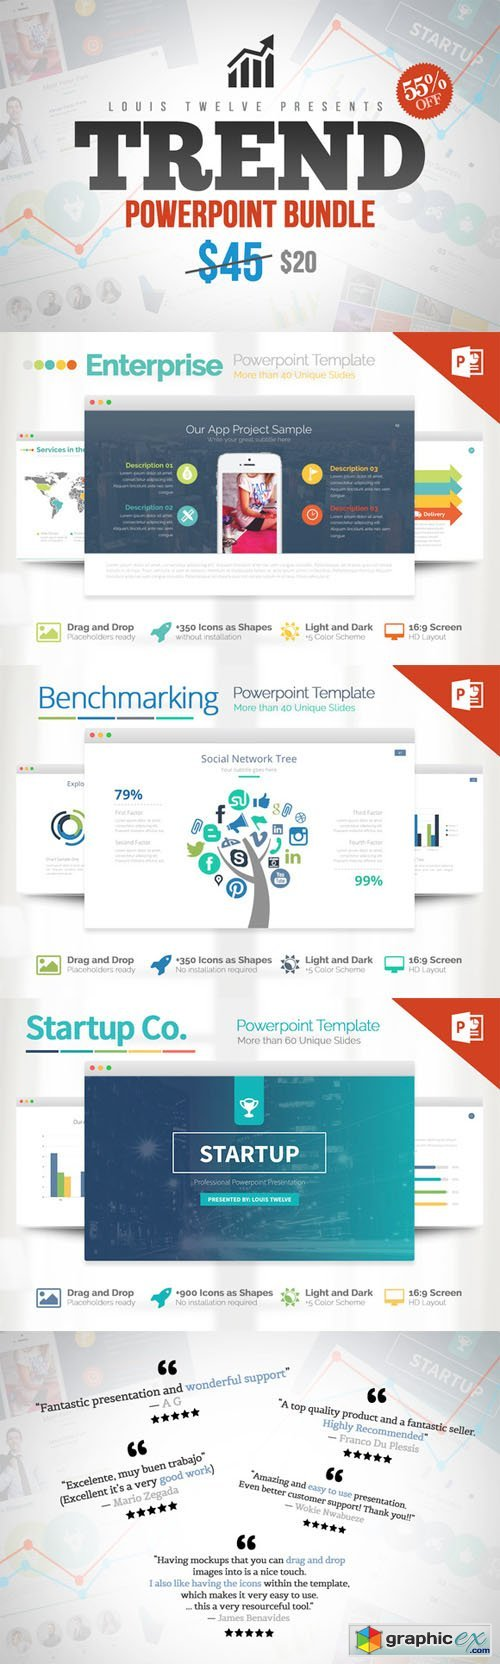 Trend Powerpoint Bundle » Free Download Vector Stock Image Photoshop